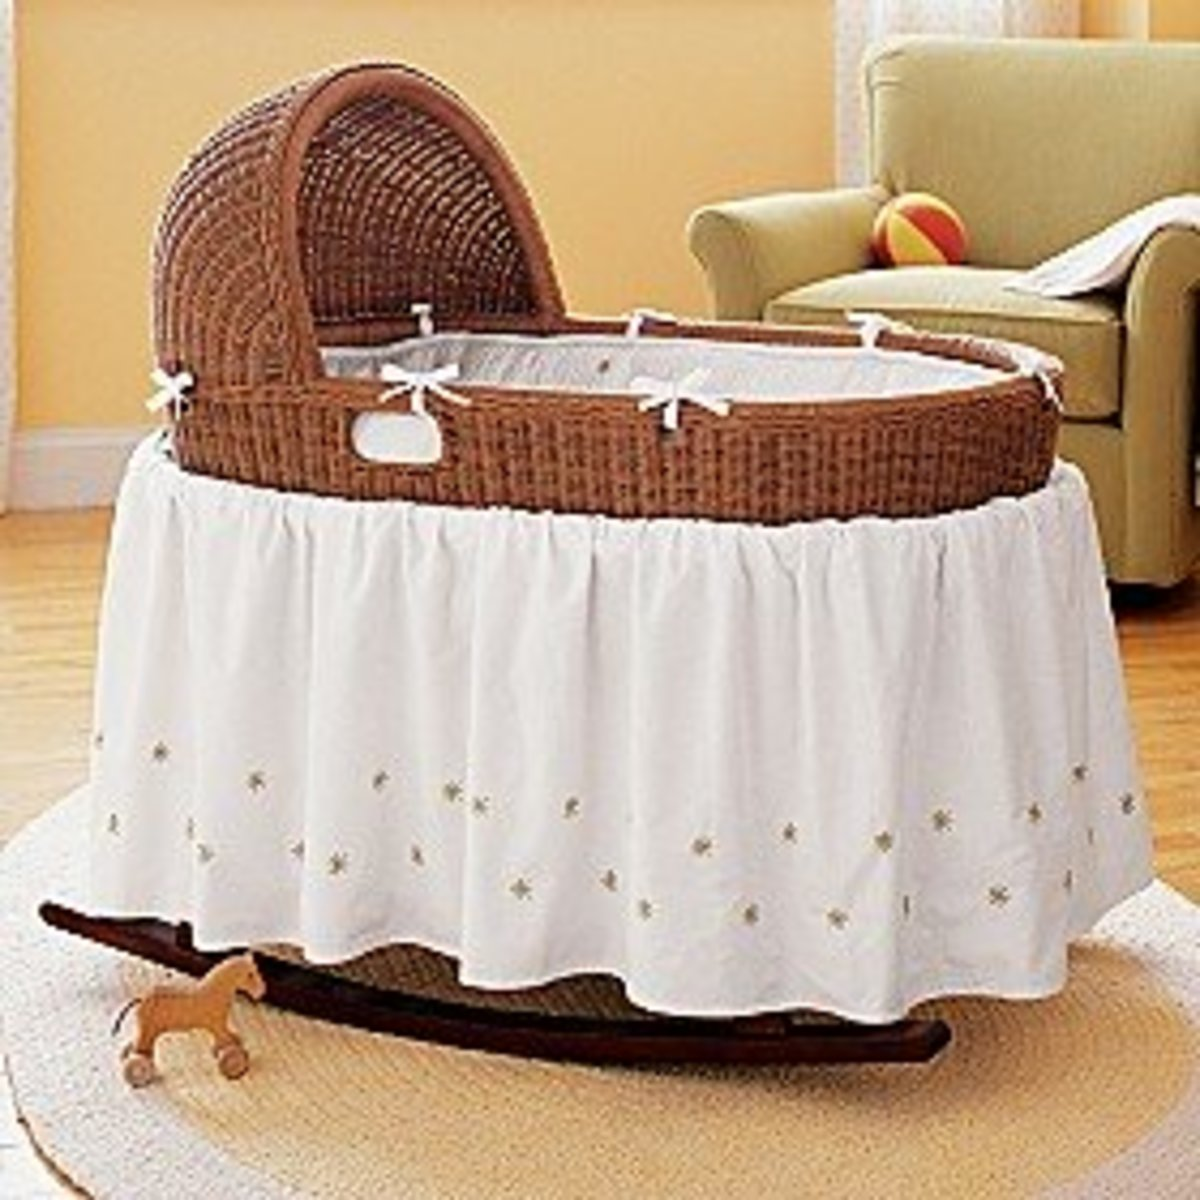 baby honey bassinet and bedding set.  also in esspresso and white.  rocks.  no storage. land of nod.